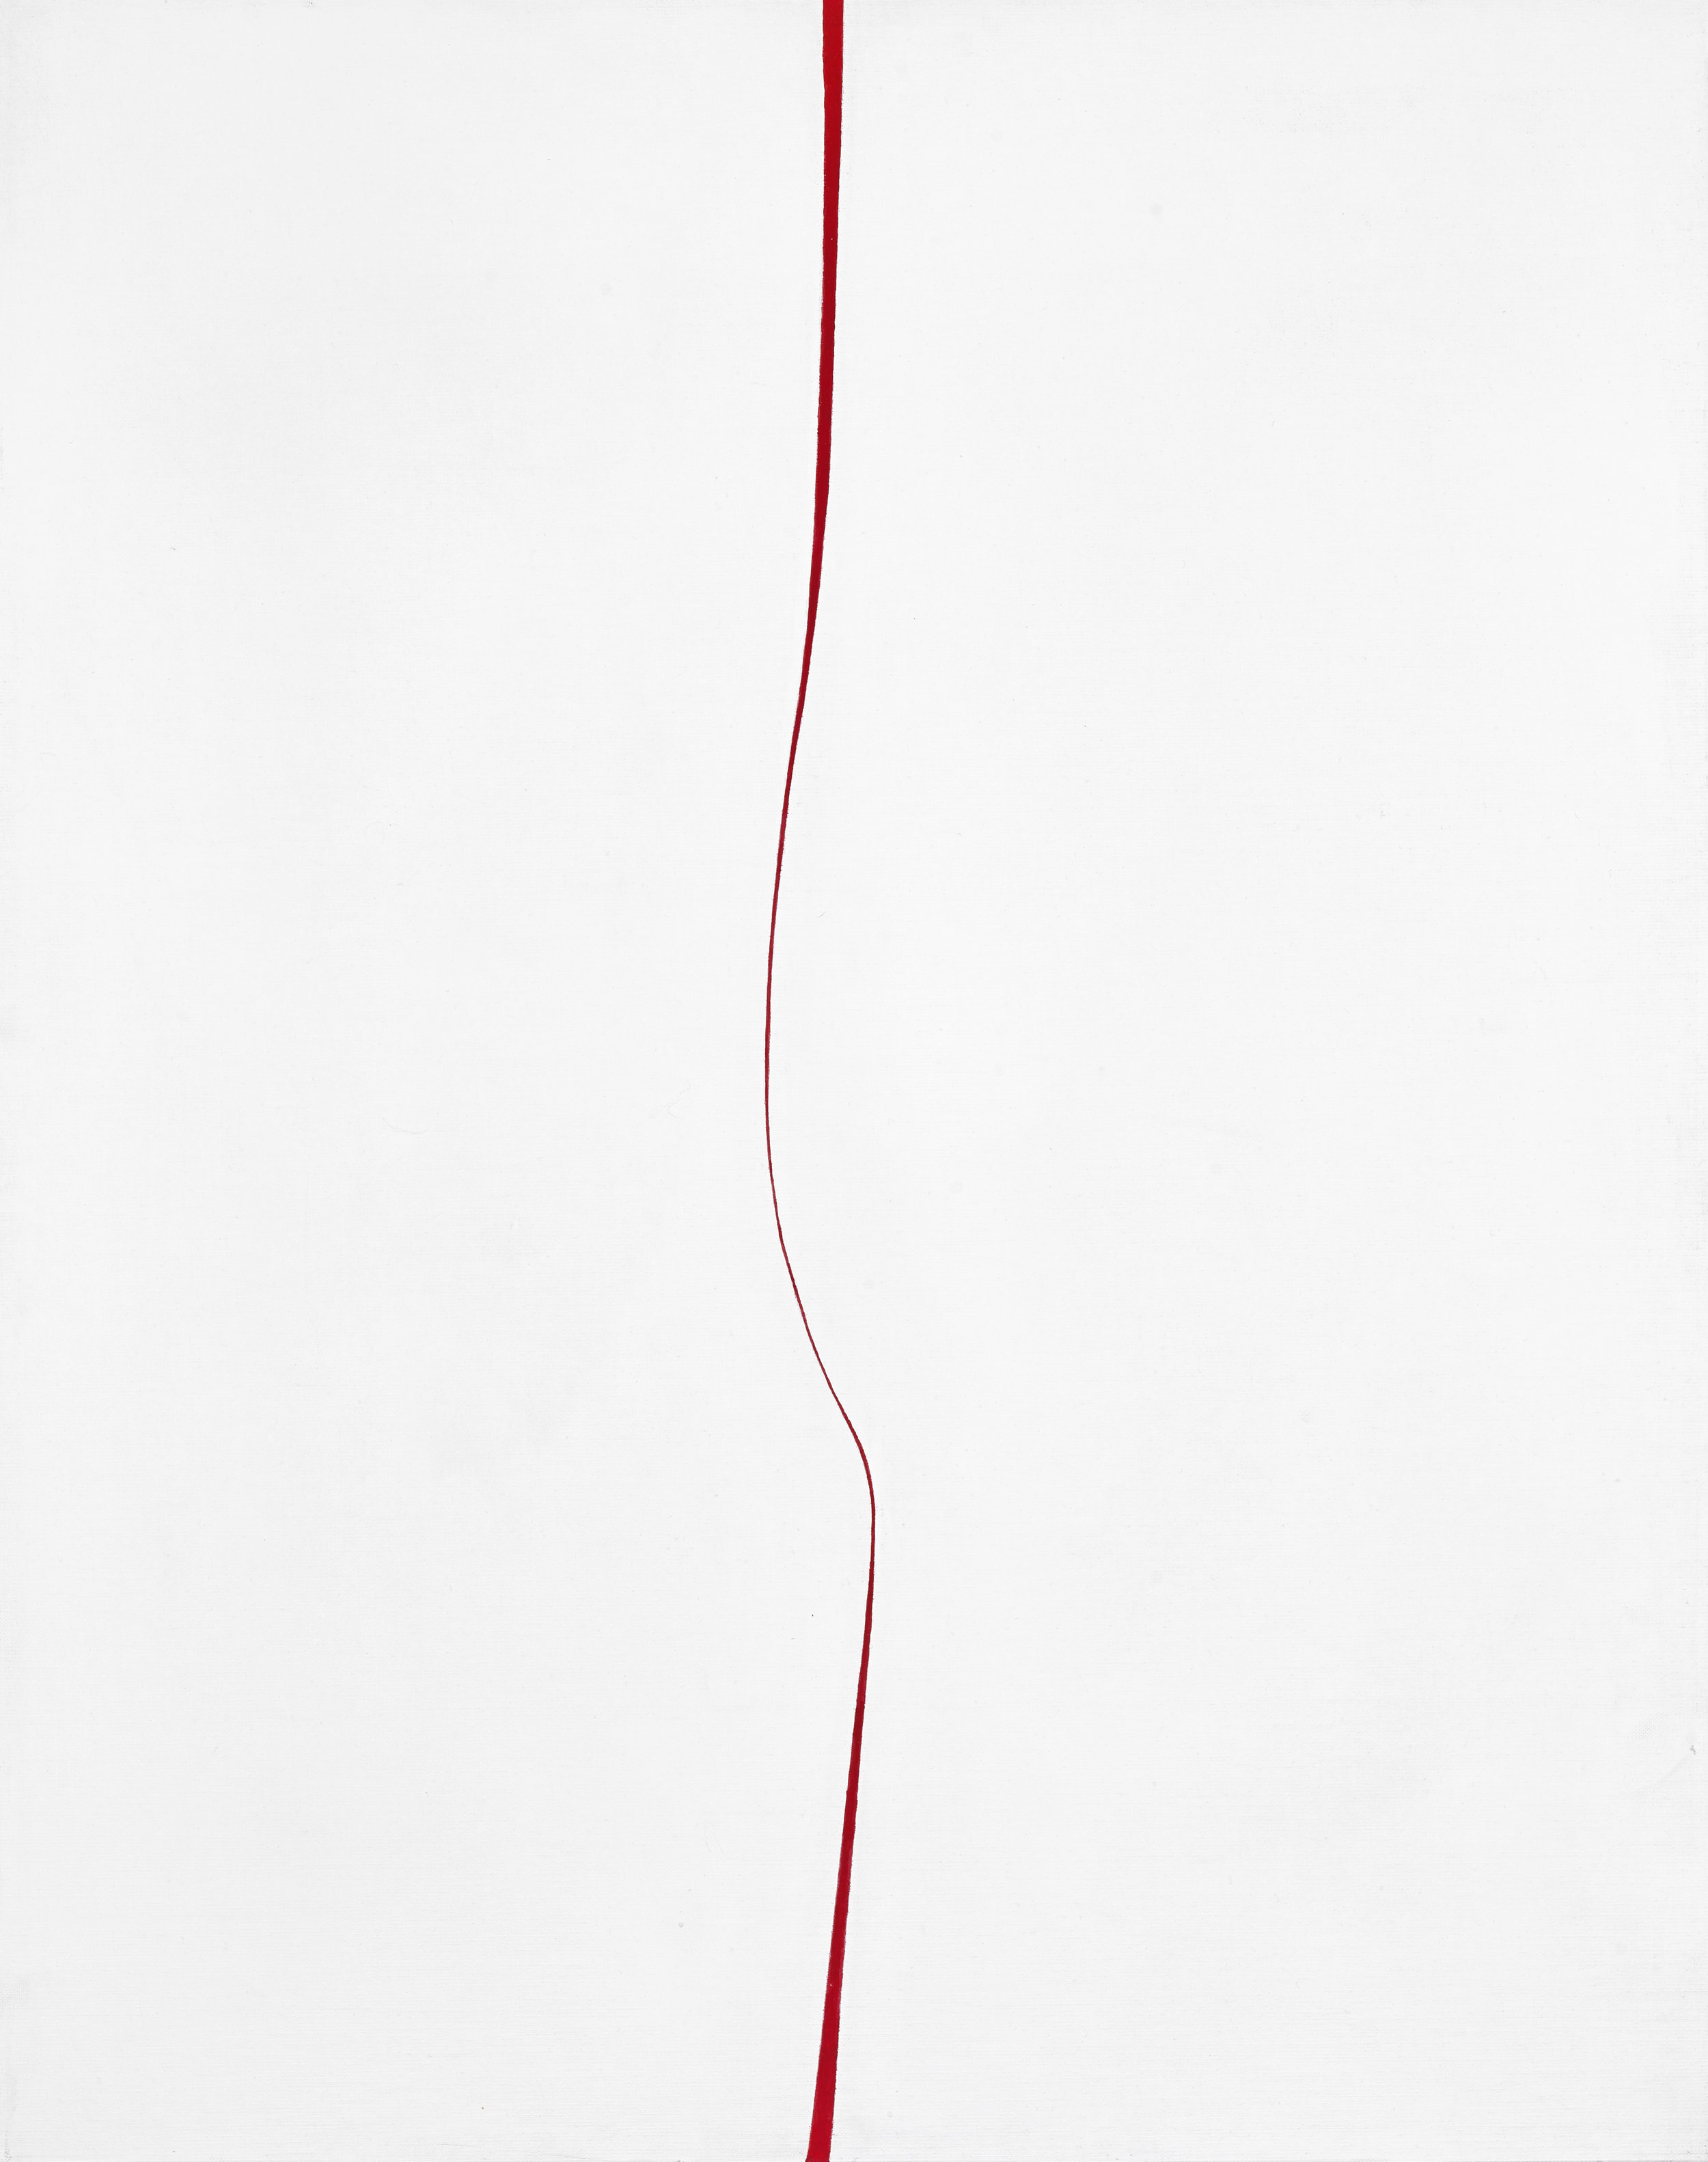 Untitled (June 14) , 1977  acrylic on canvasboard 30 x 24 inches; 76.2 x 61 centimeters